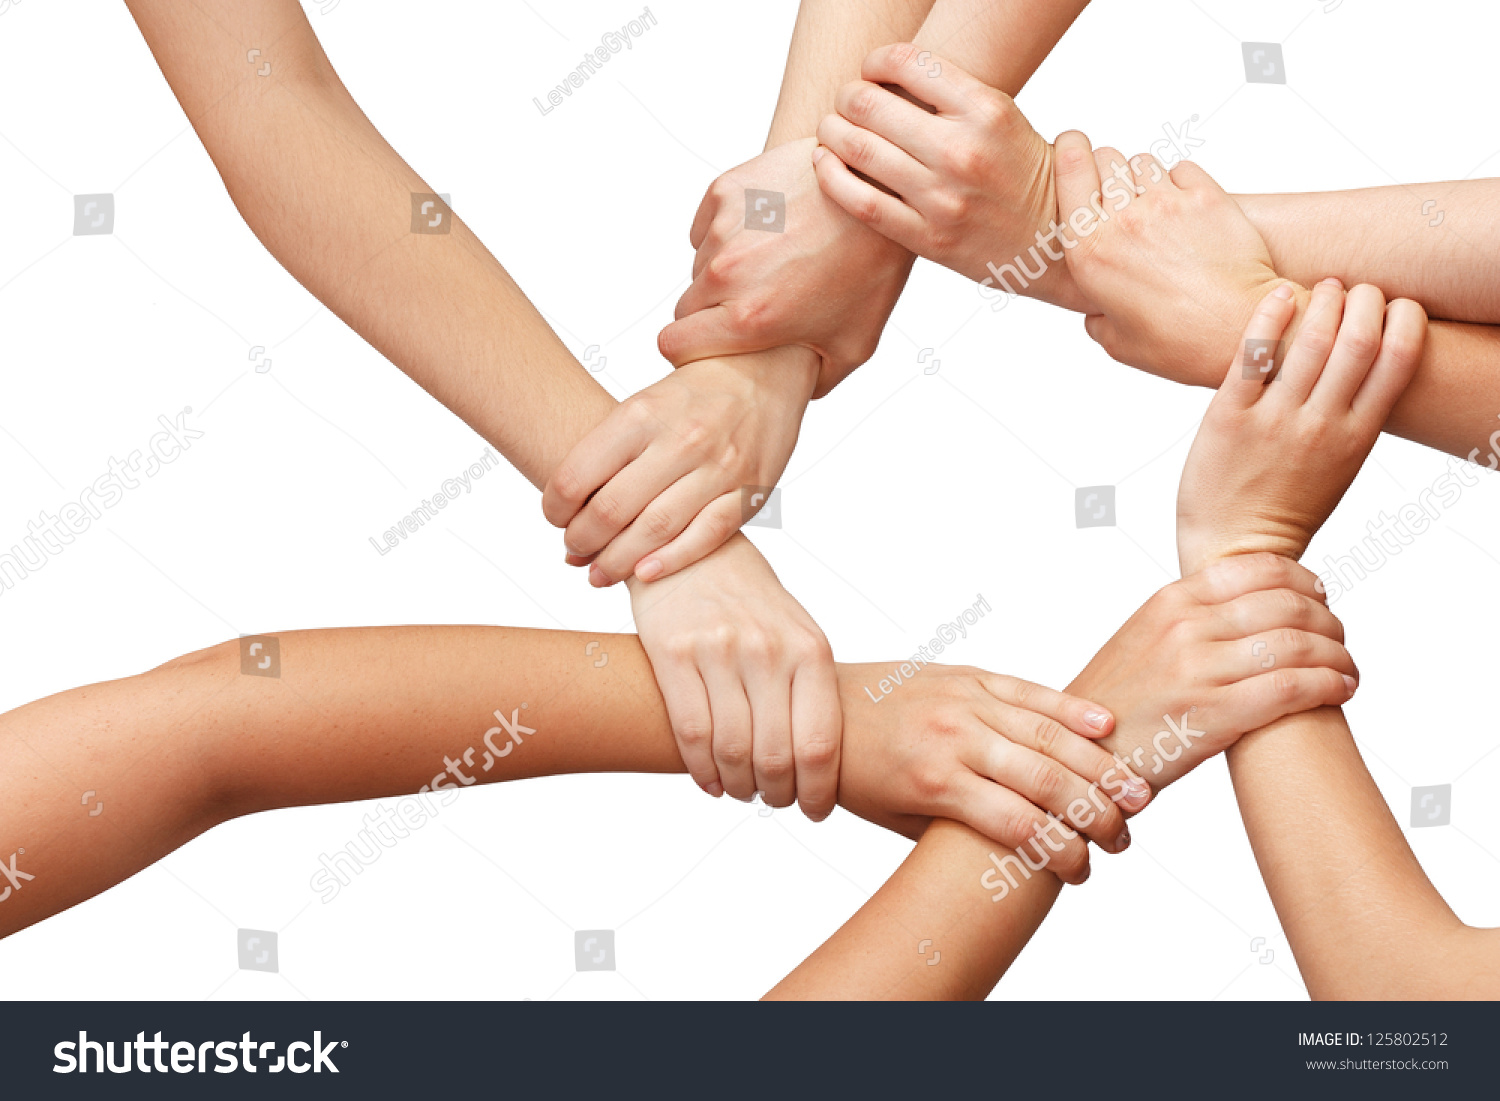 Ring Many Hands Teamwork Stock Photo 125802512 - Shutterstock